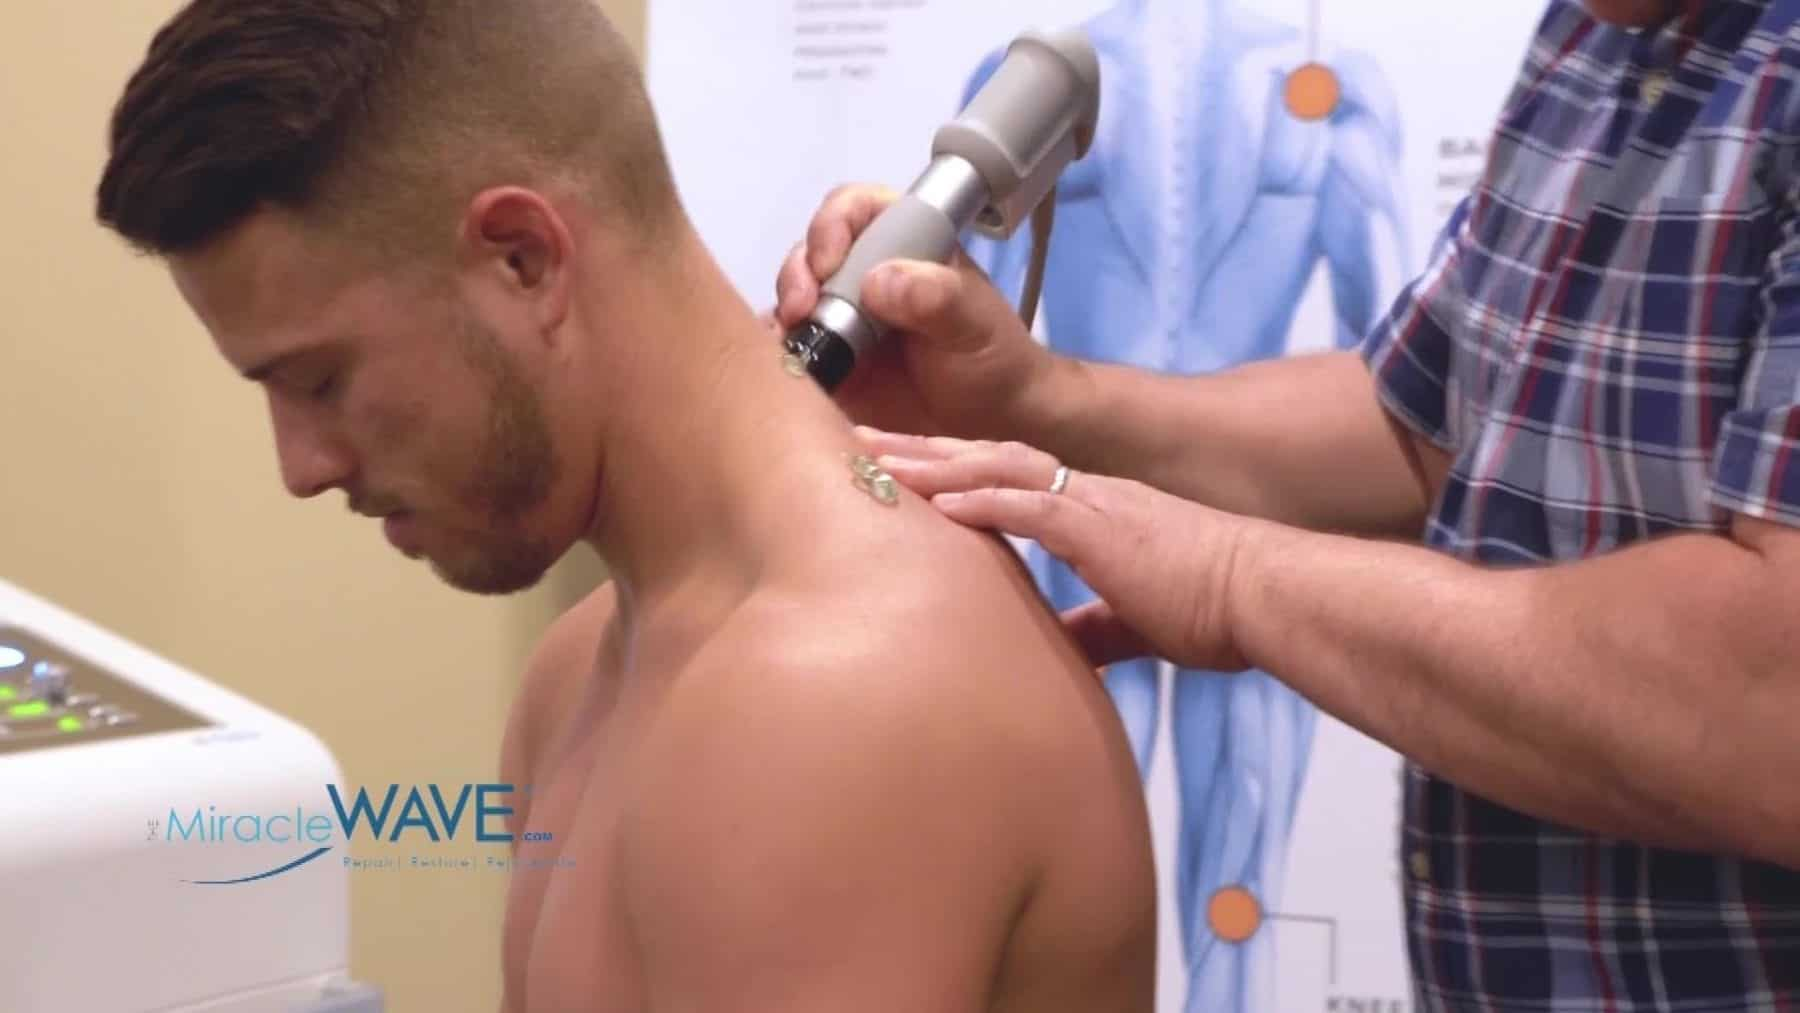 Connecticut Disc and Laser Therapy Centers | The Miracle Wave